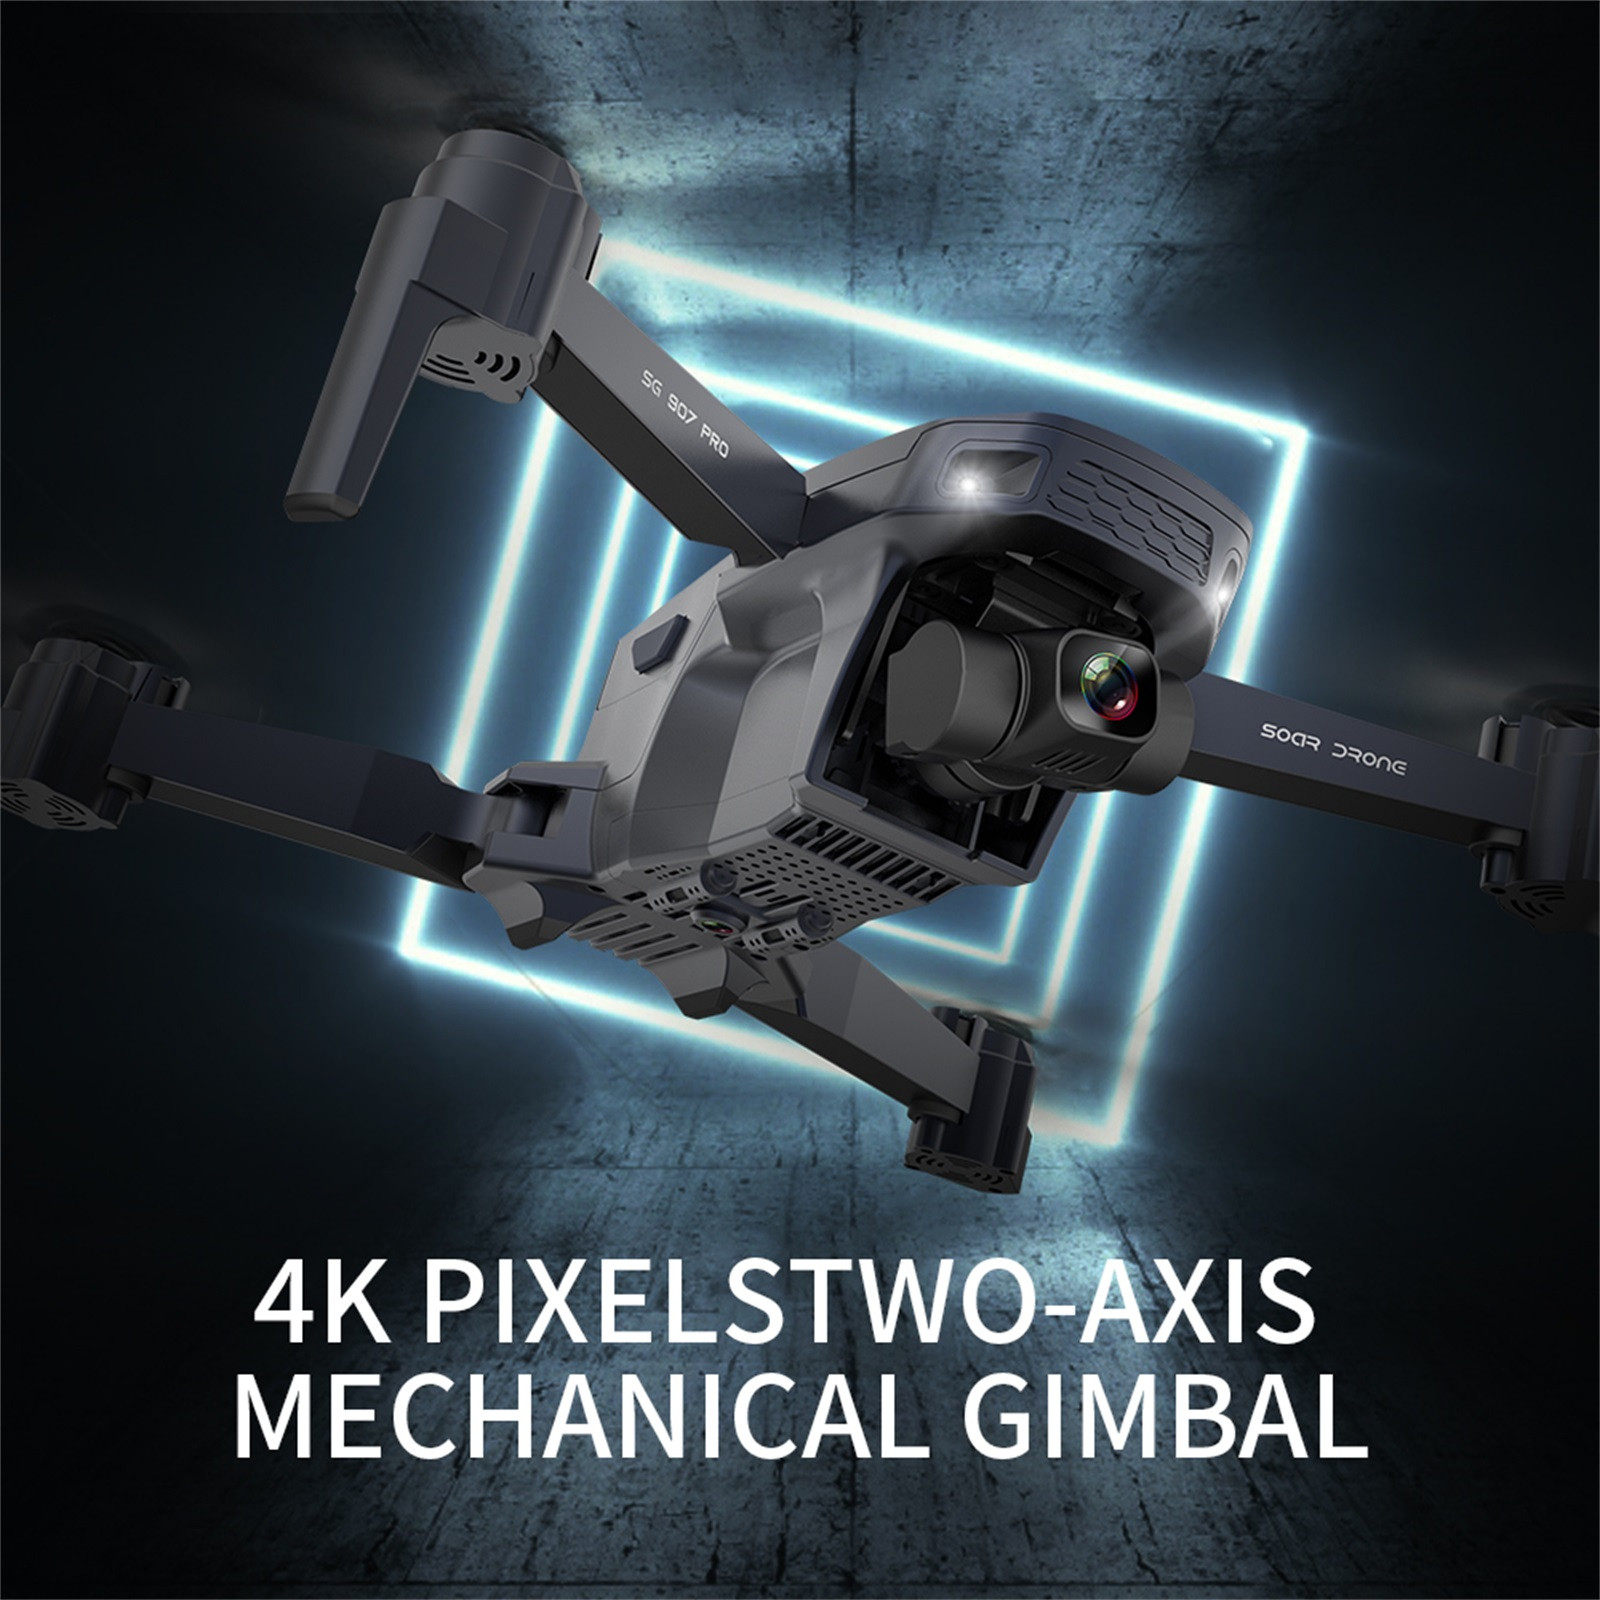 H7379155bbf6d4a6099d62d58a6fc10f7B - 2020 New Sg907 Pro 5g Wifi Drone 2-axis Gimbal 4k Camera Wifi Gps Rc Drone Toy Rc Four-axis Professional Folding Camera Drones